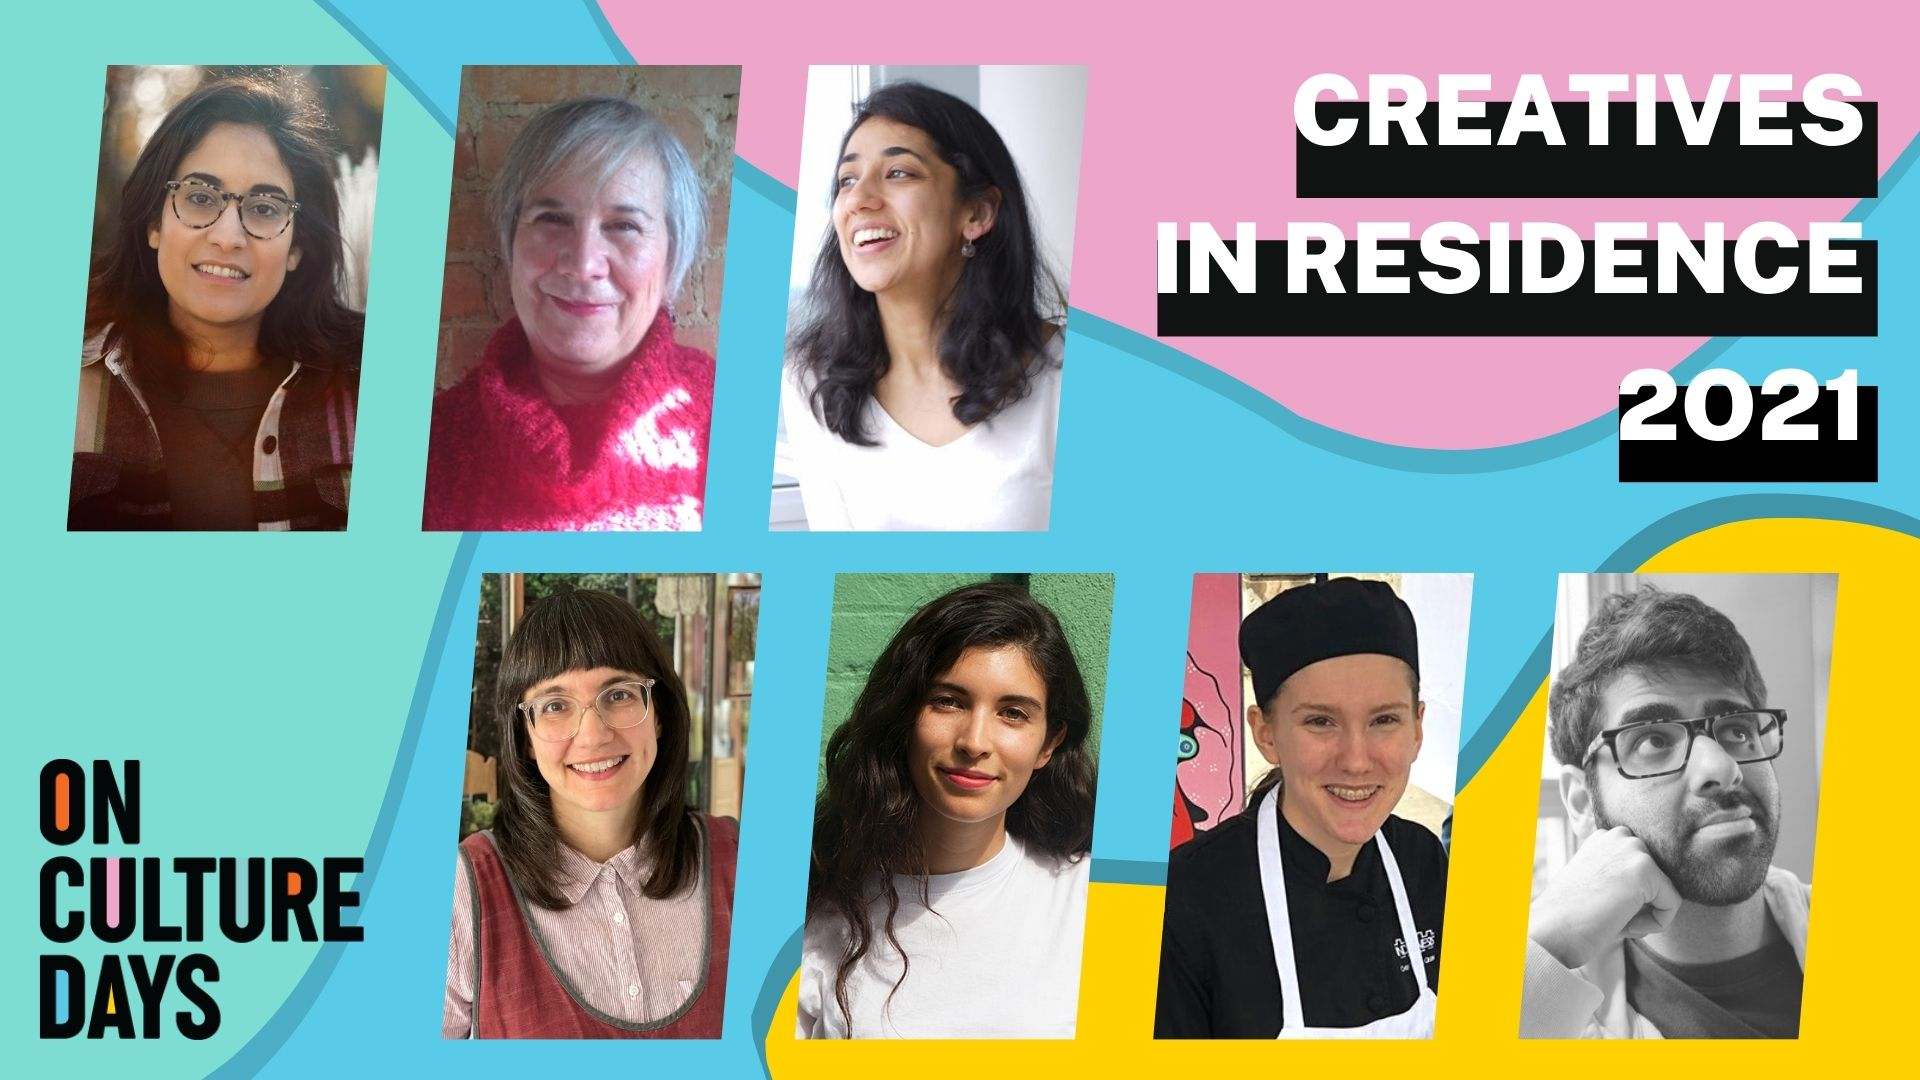 Creatives in Residence 2021